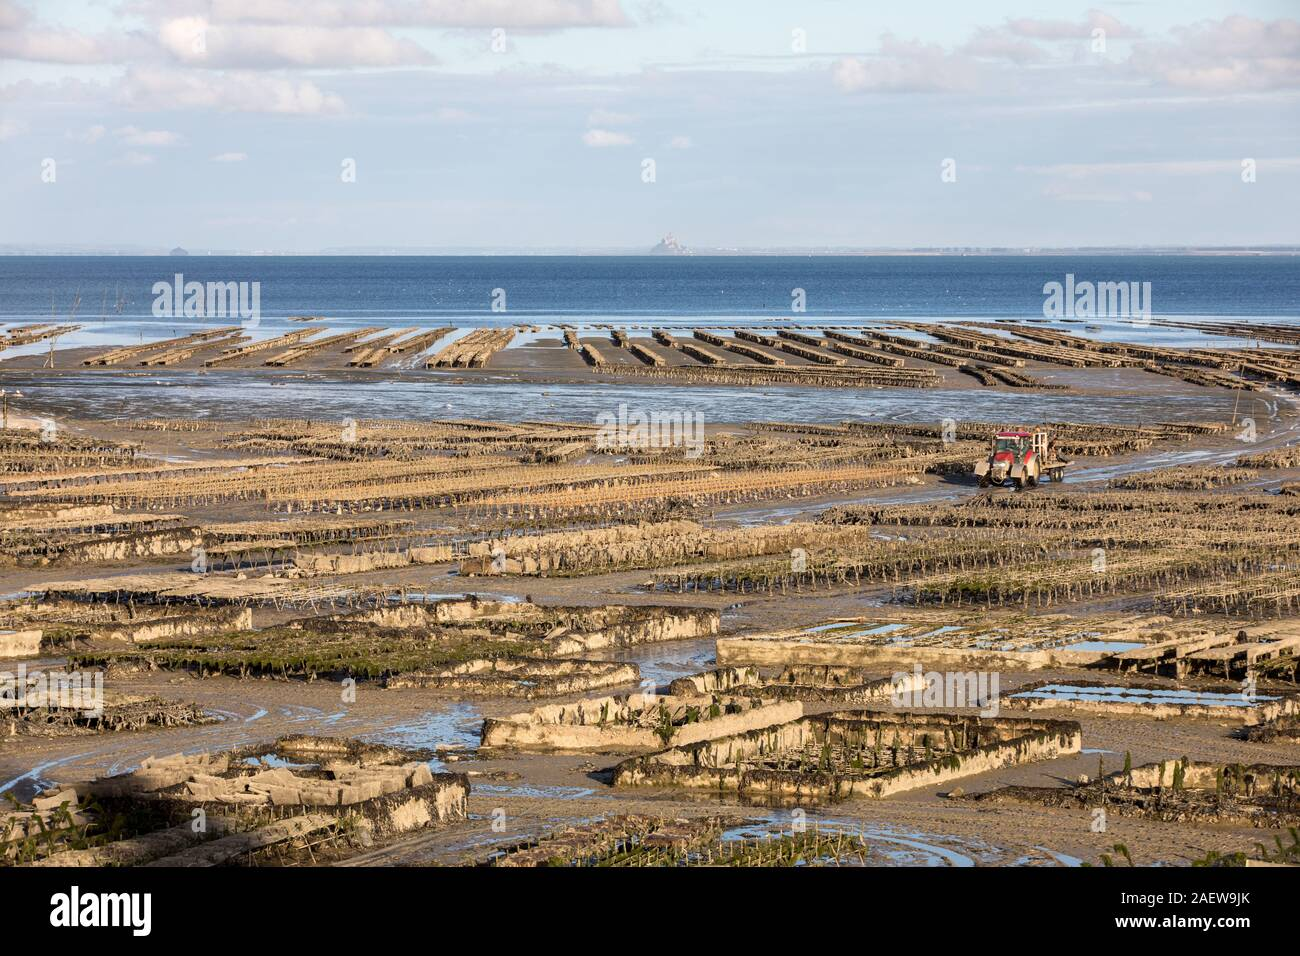 Oyster beds at low tide in oyster farm, Cancale, Brittany, France Stock Photo